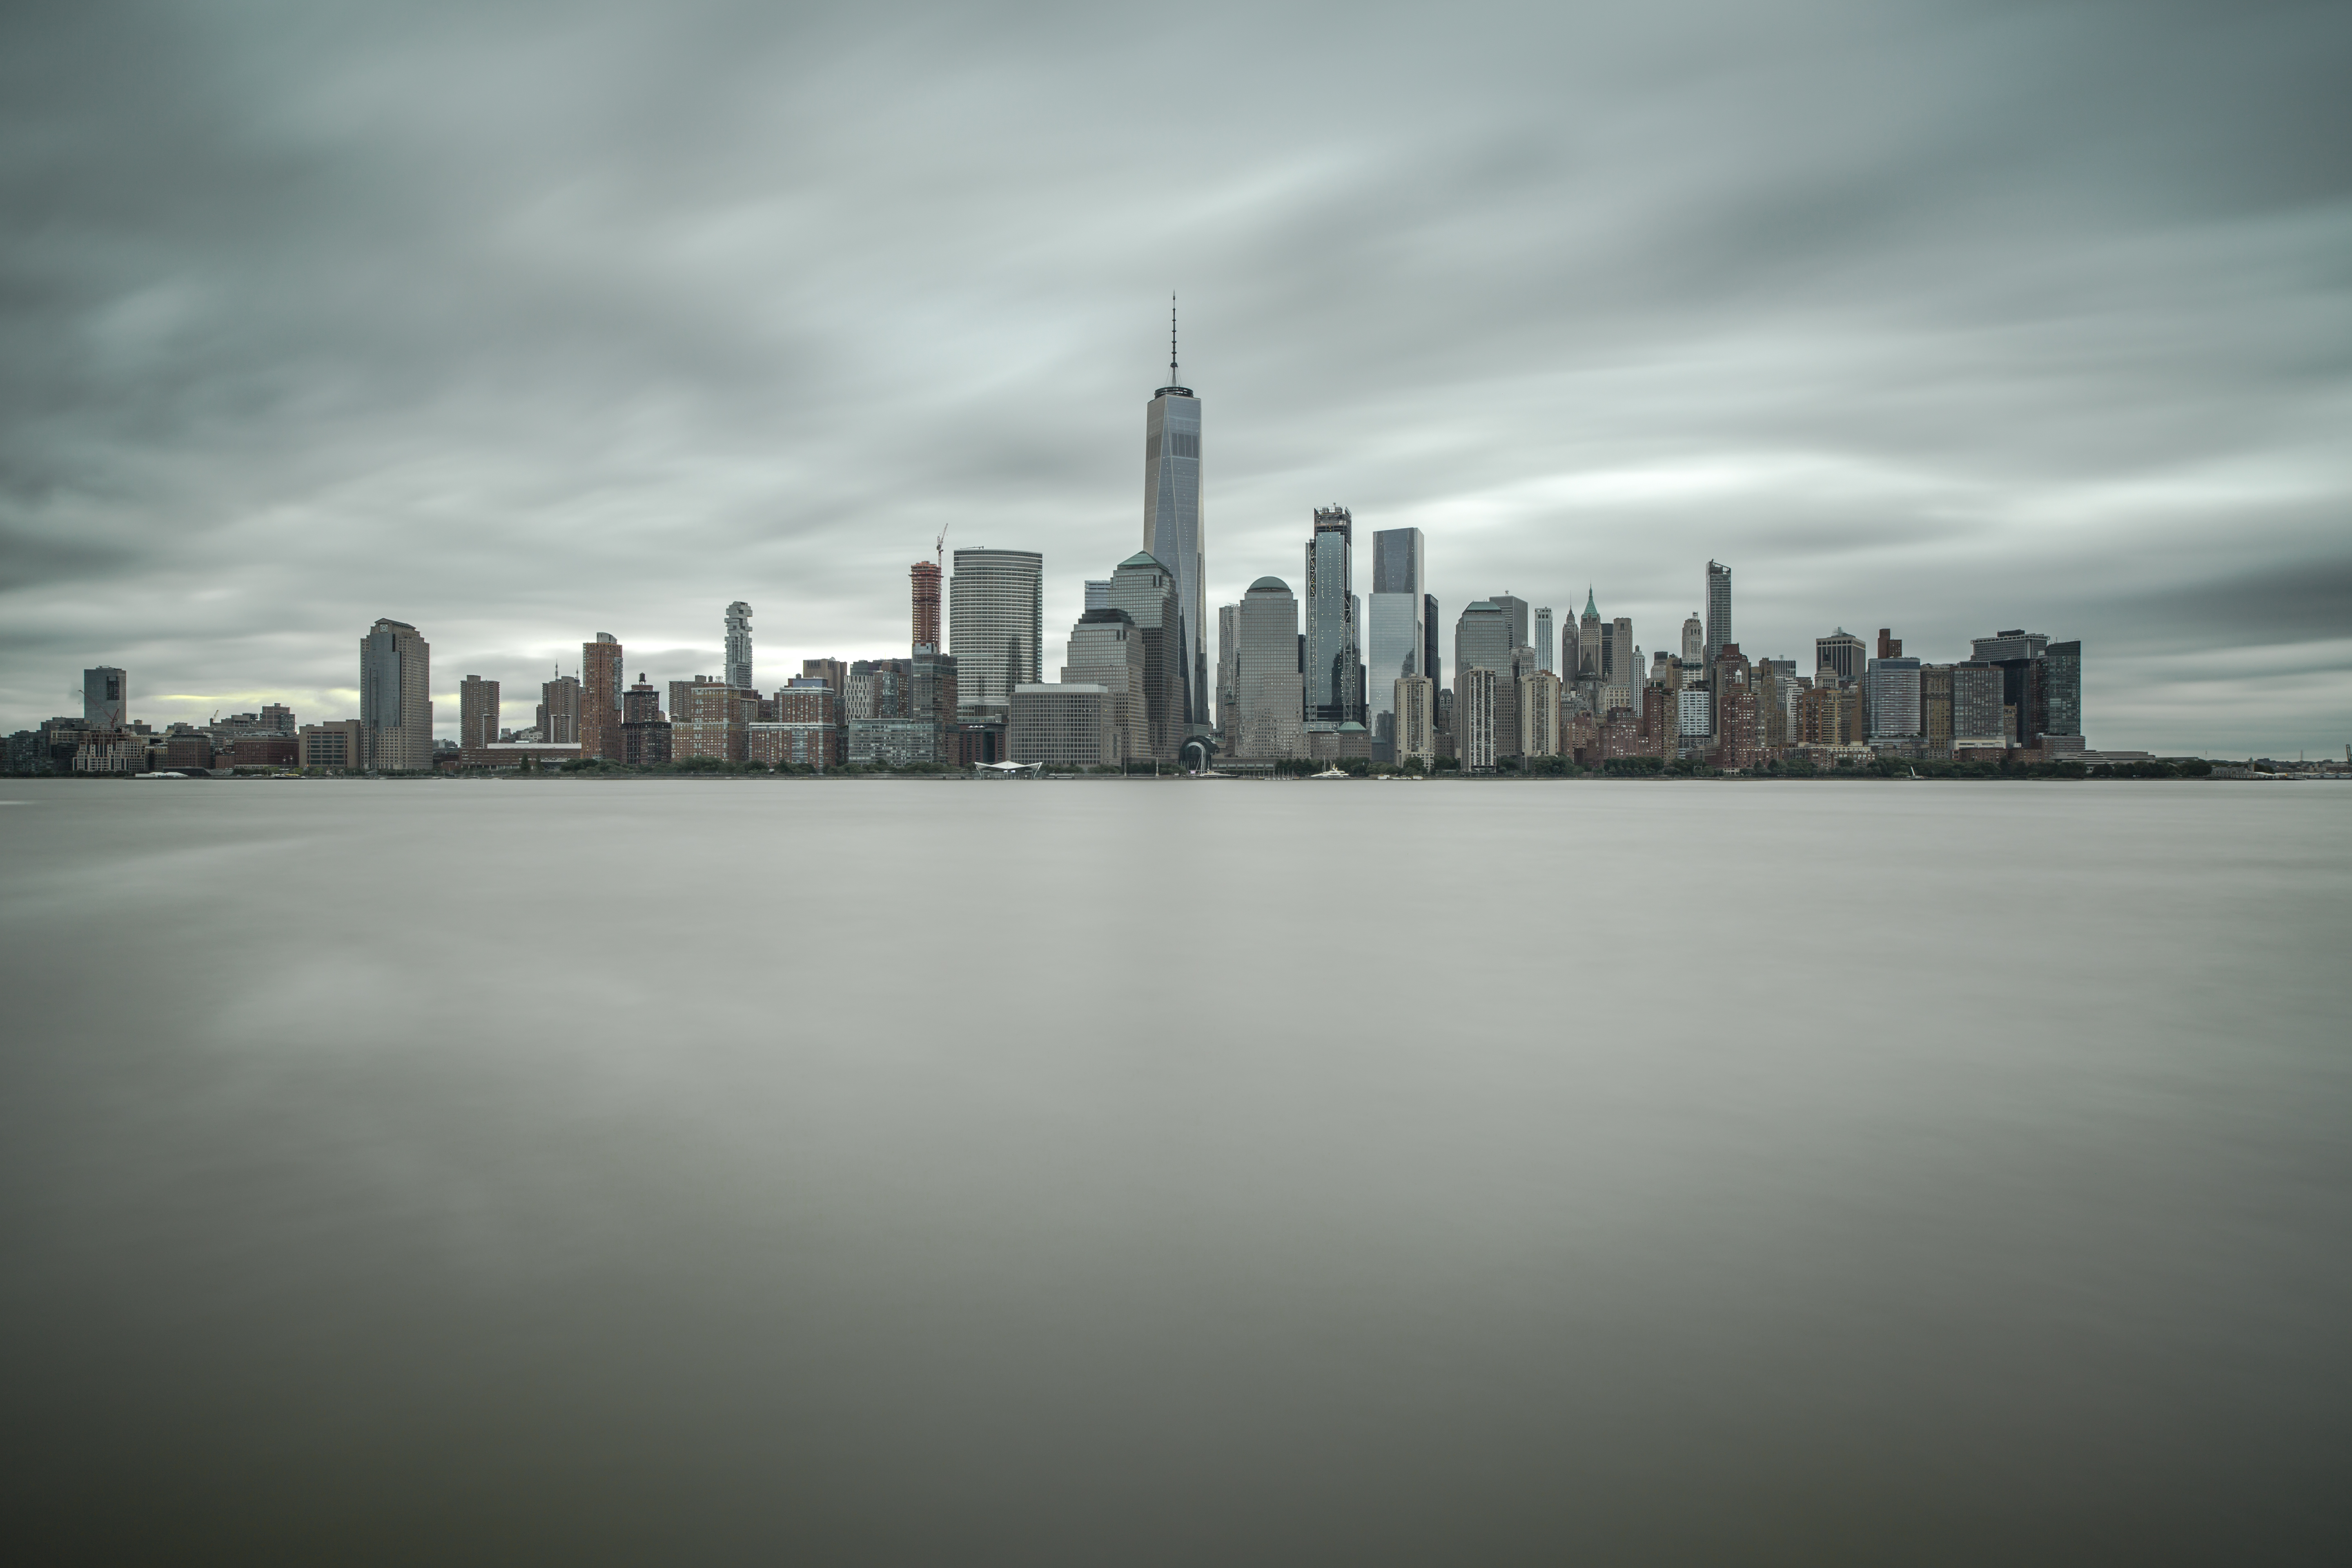 Downtown Manhattan view on a cloudy windy day example image 1